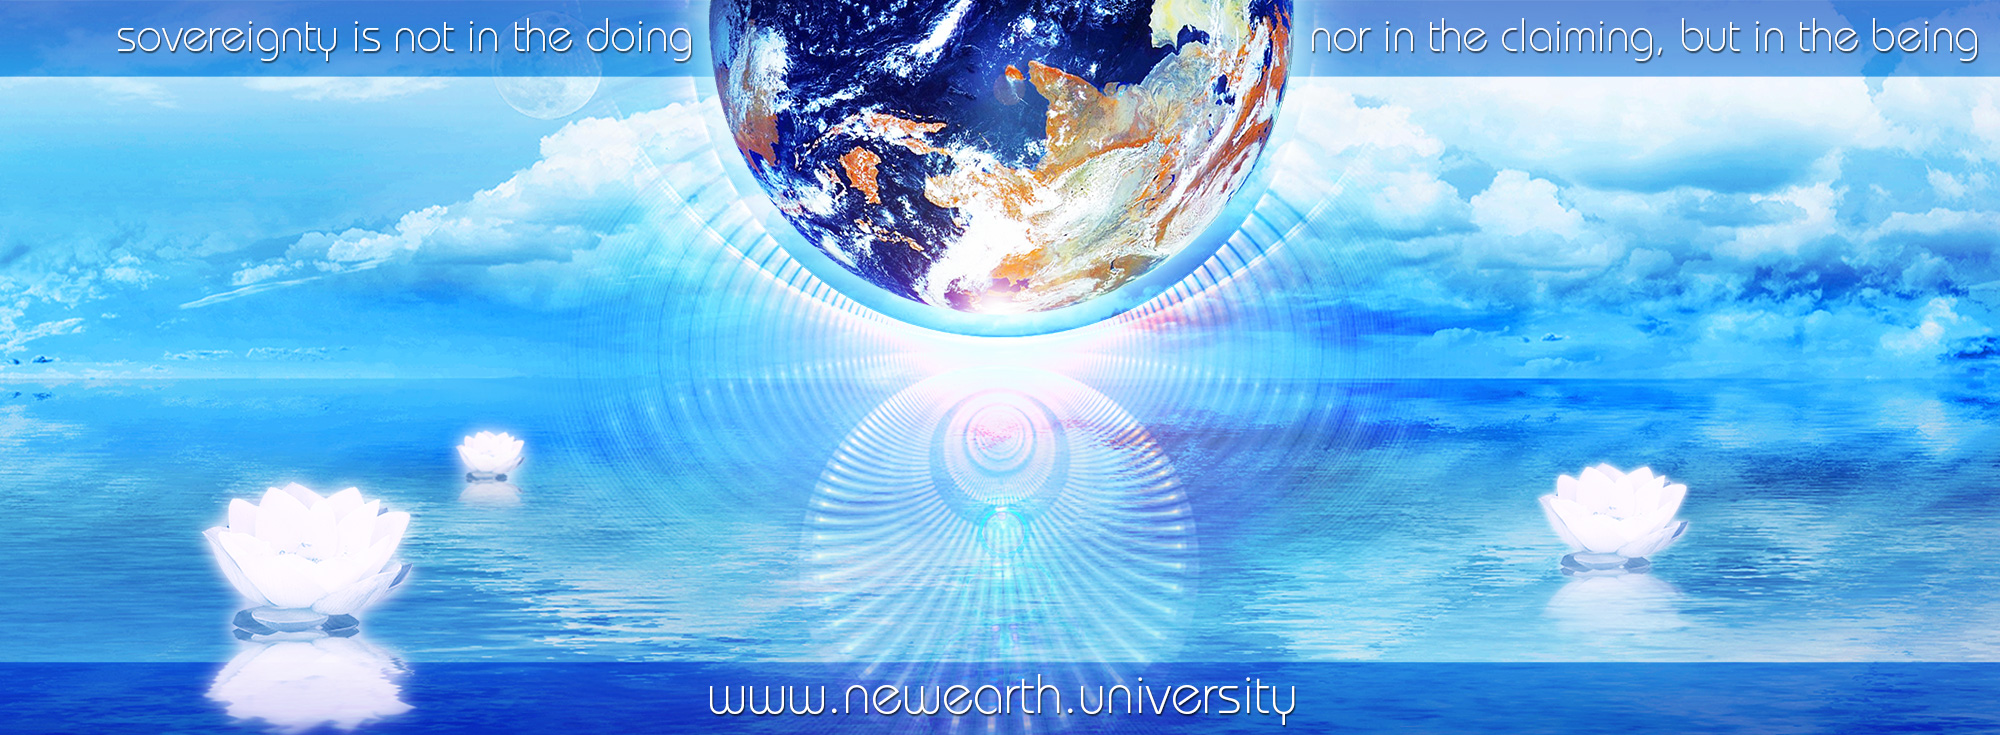 newearth university (neu) at facebook